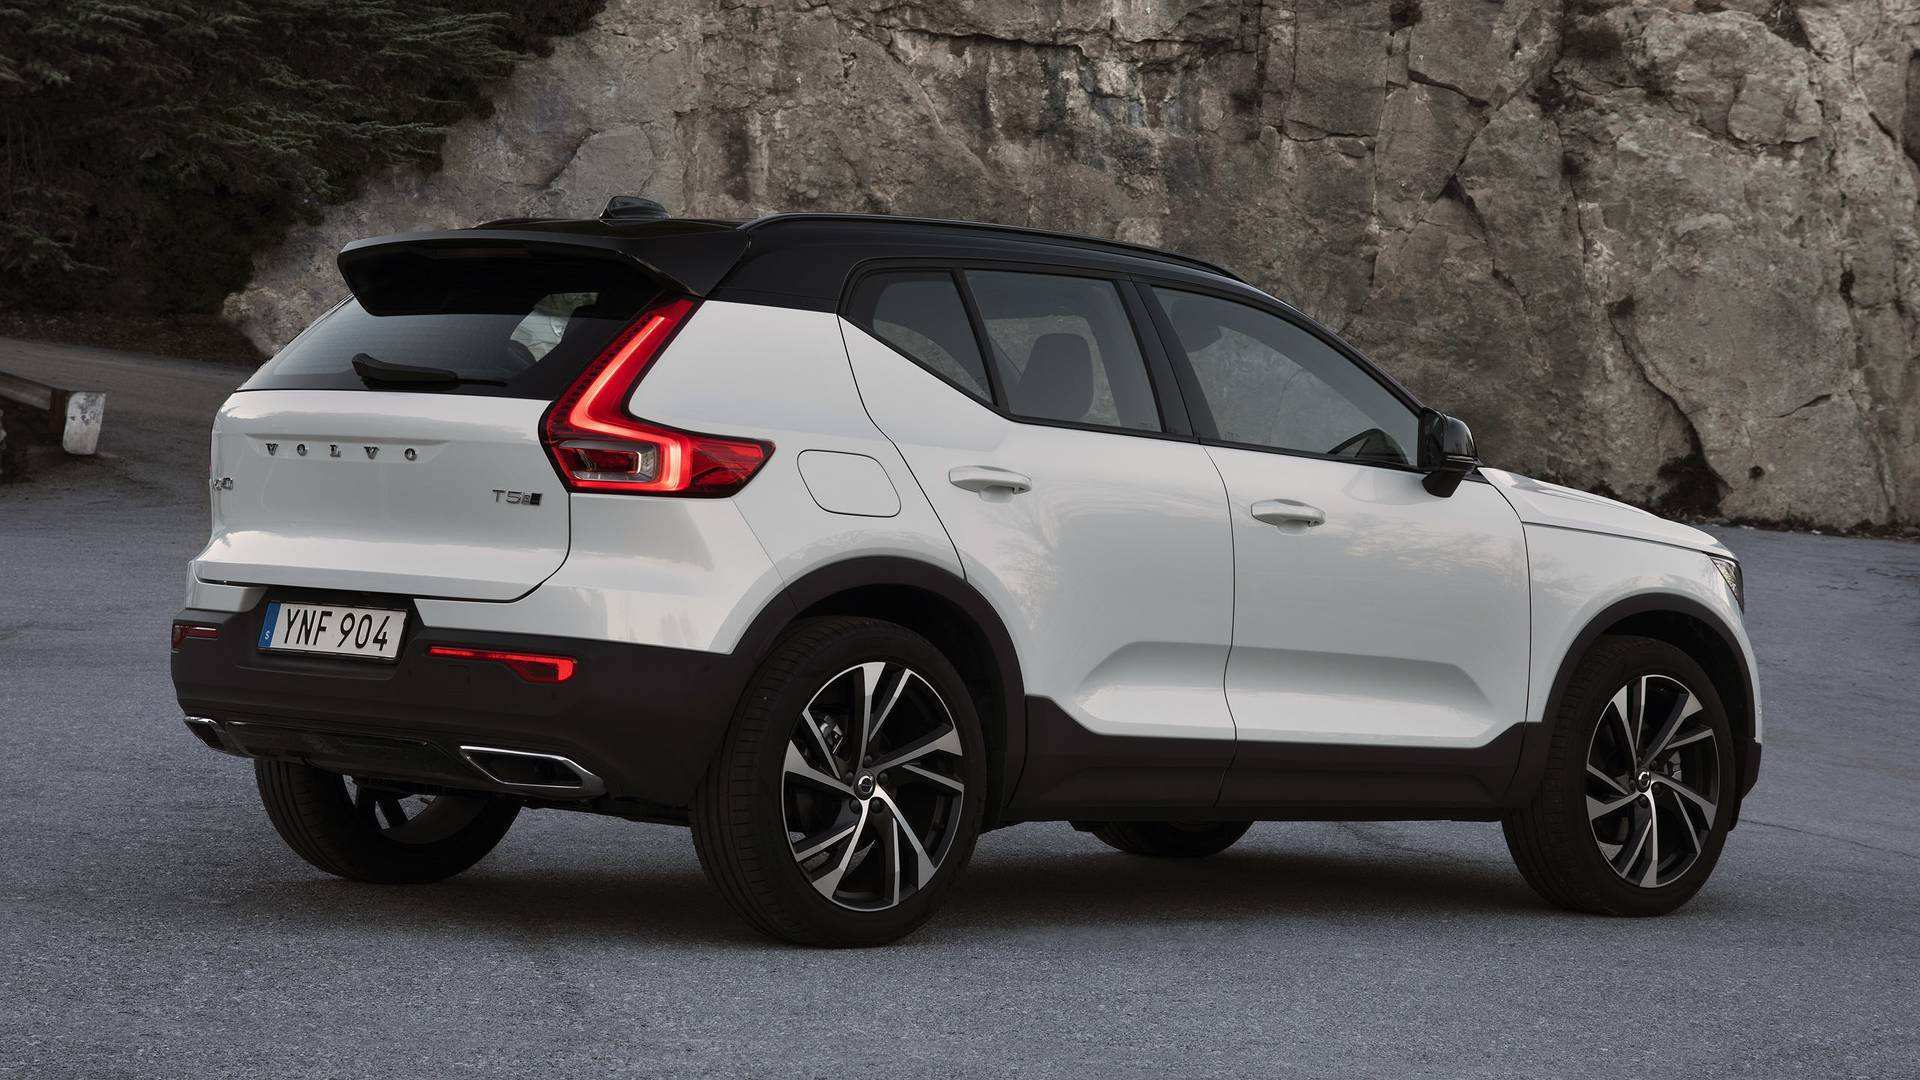 98 The Best Volvo Cx40 2019 Images